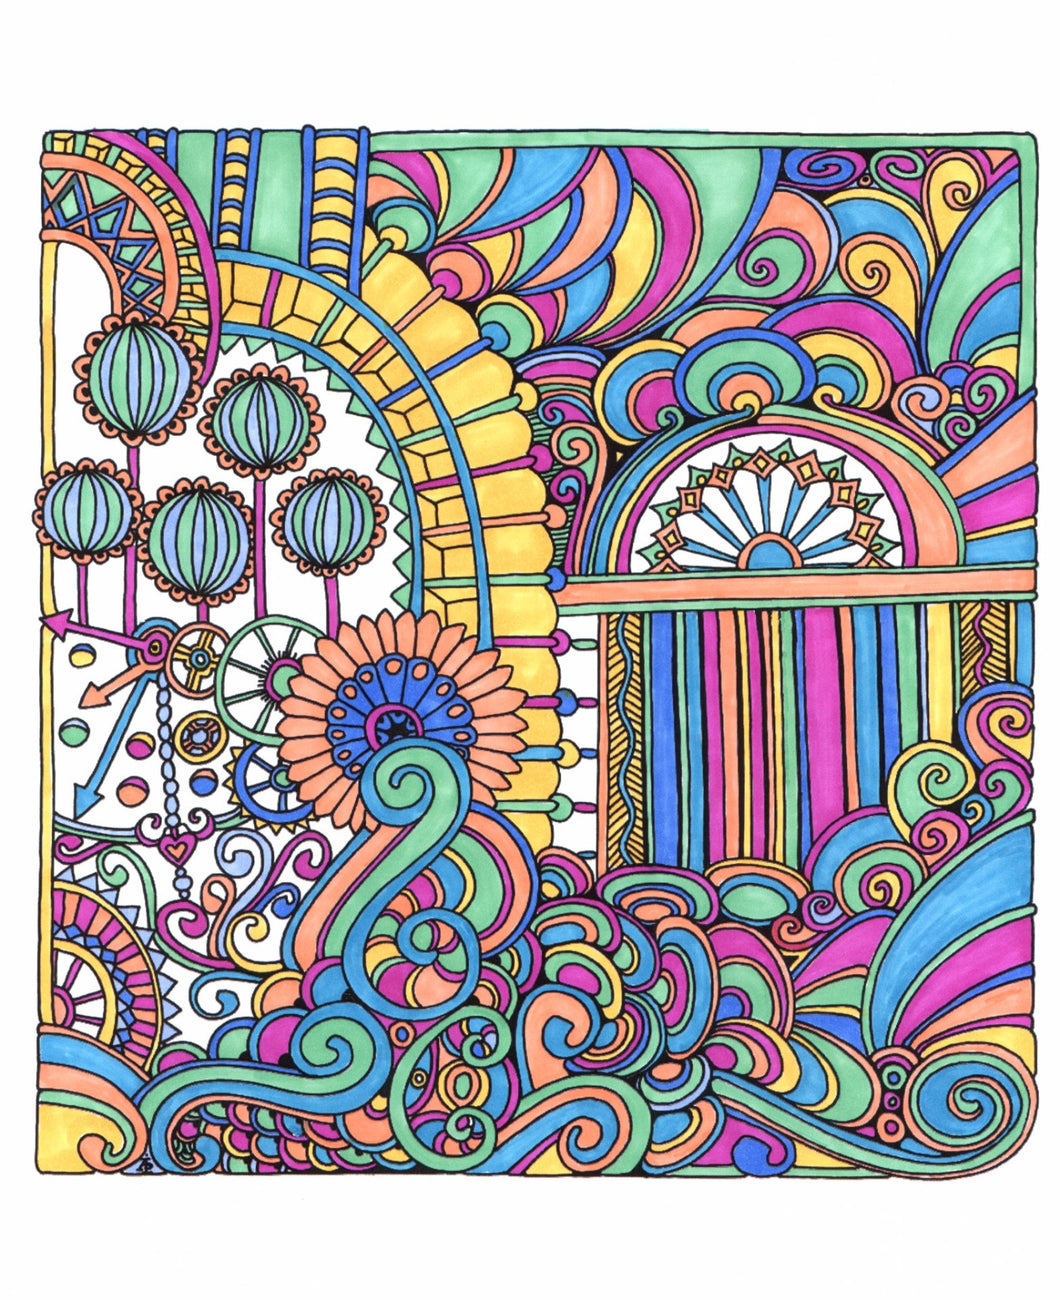 Stress free coloring book -  Color Me Stress Free Nearly 100 Coloring Templates To Unplug And Unwind Coloring Book